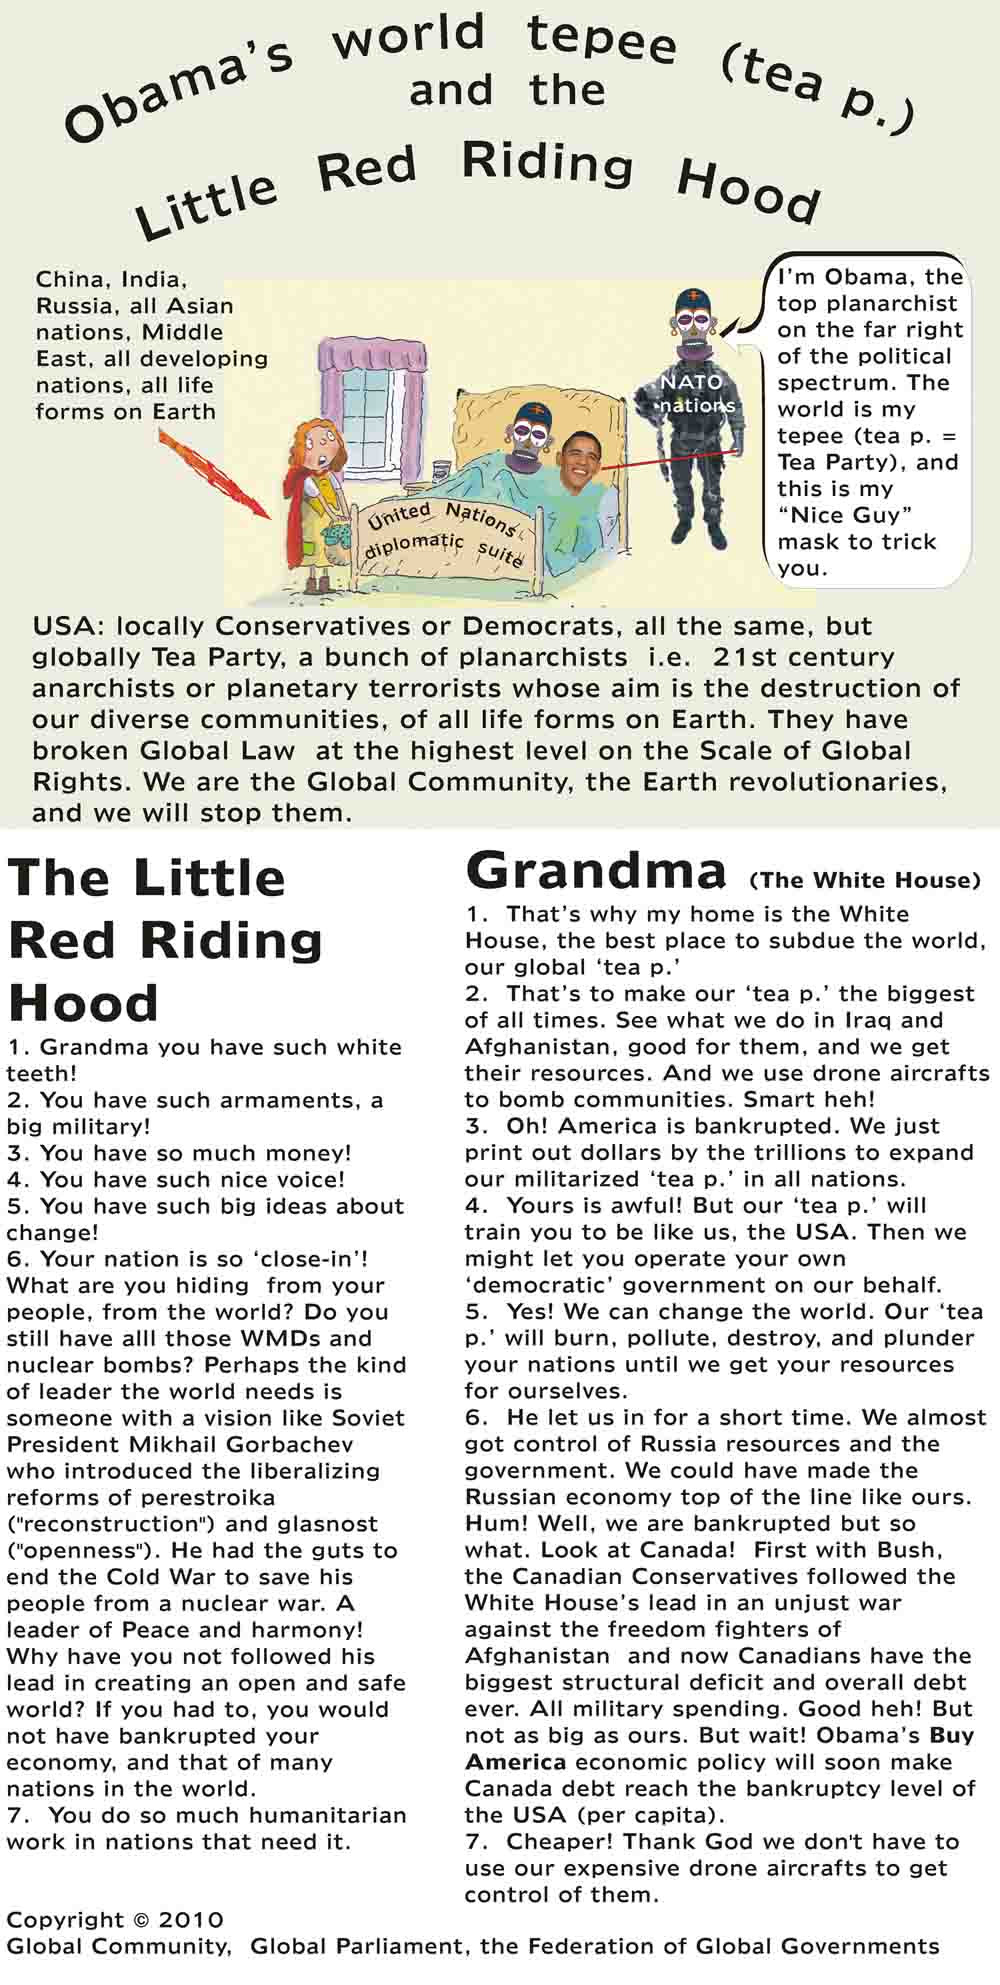 Obama s  world  tepee  (tea p. - Tea Party) and the  Little  Red  Riding  Hood